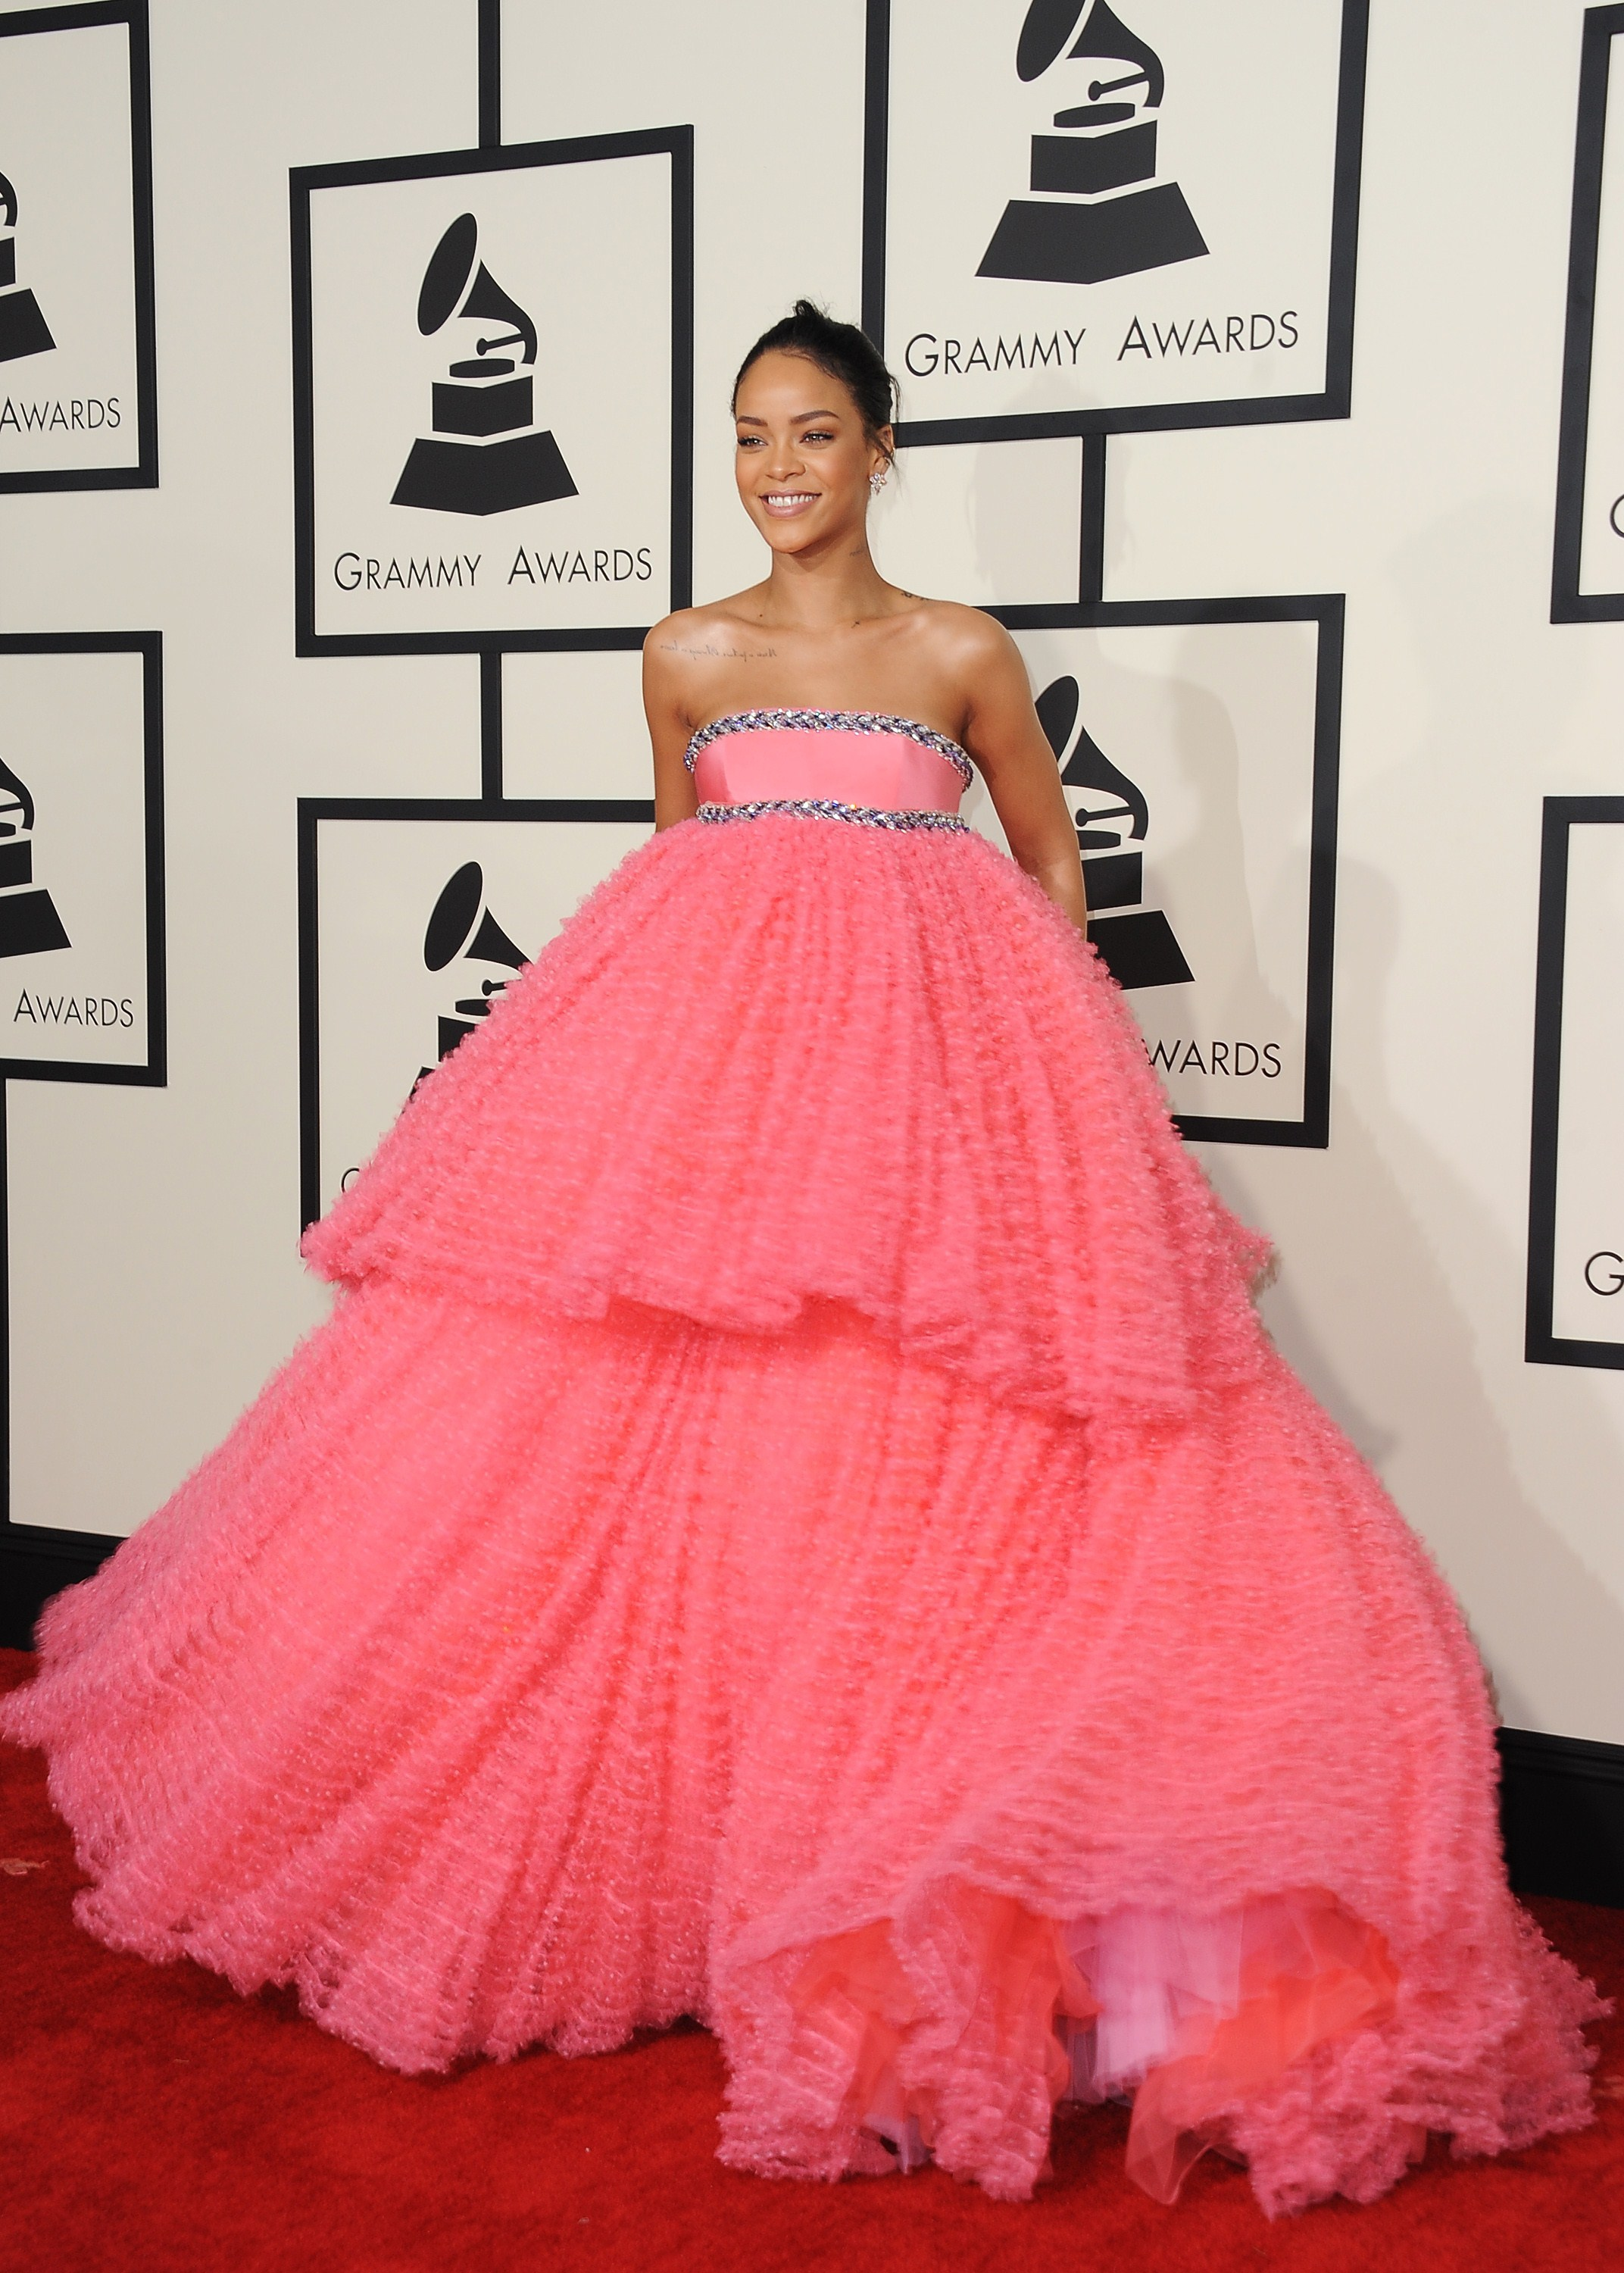 17 Shocking Rihanna Outfits That Surprised Even Her Most Dedicated Fans